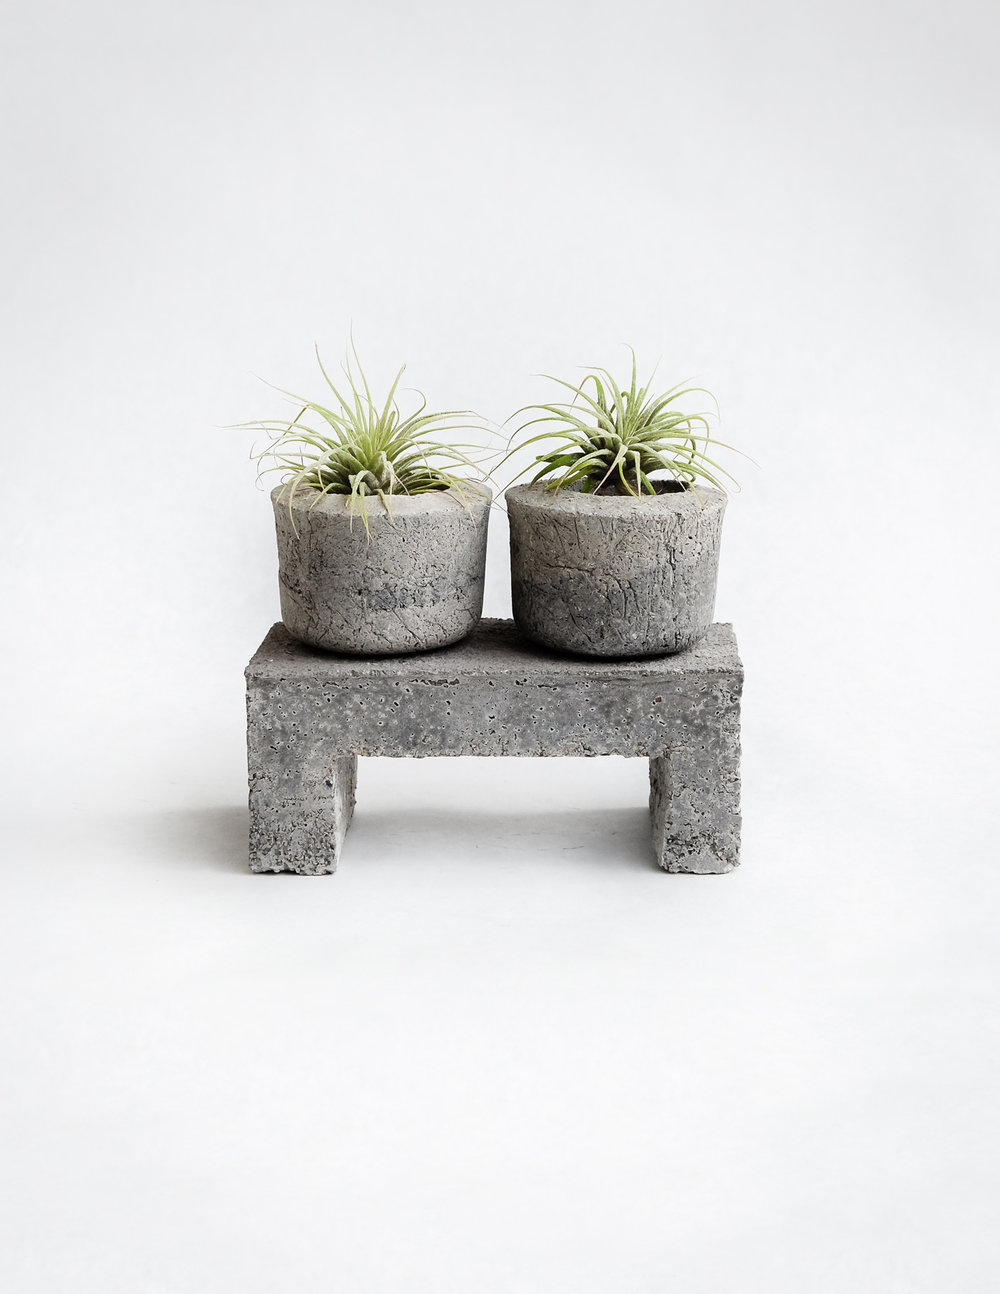 PERCHED STONE POT DUO   PISTILS NURSERY, $46